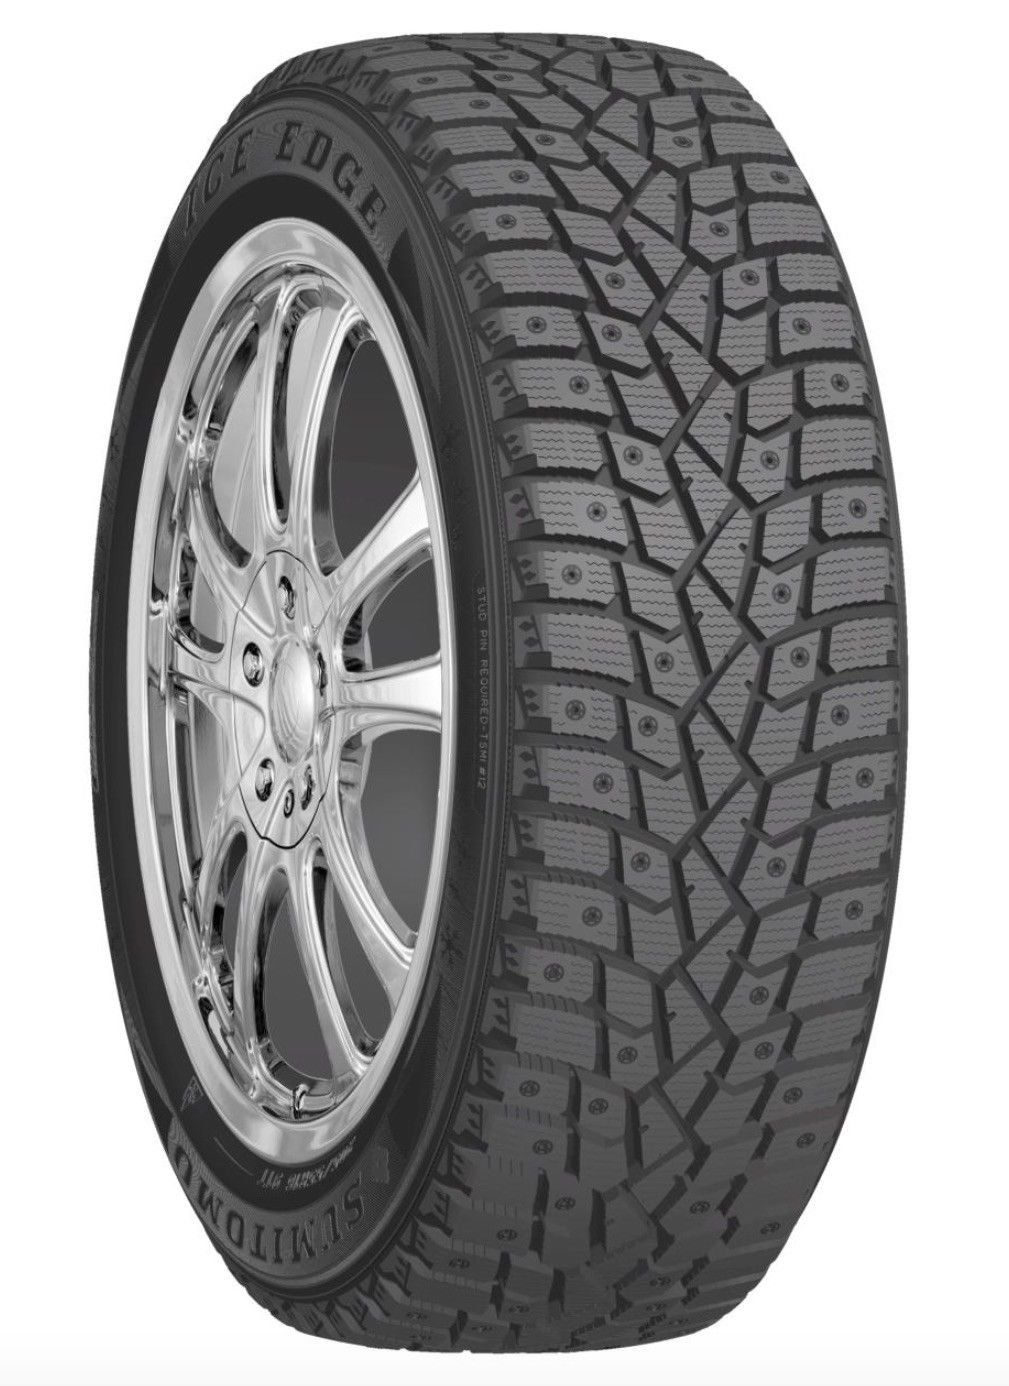 Sumitomo Ice Edge Studable-Winter Radial Tire - 205/55R16 91T